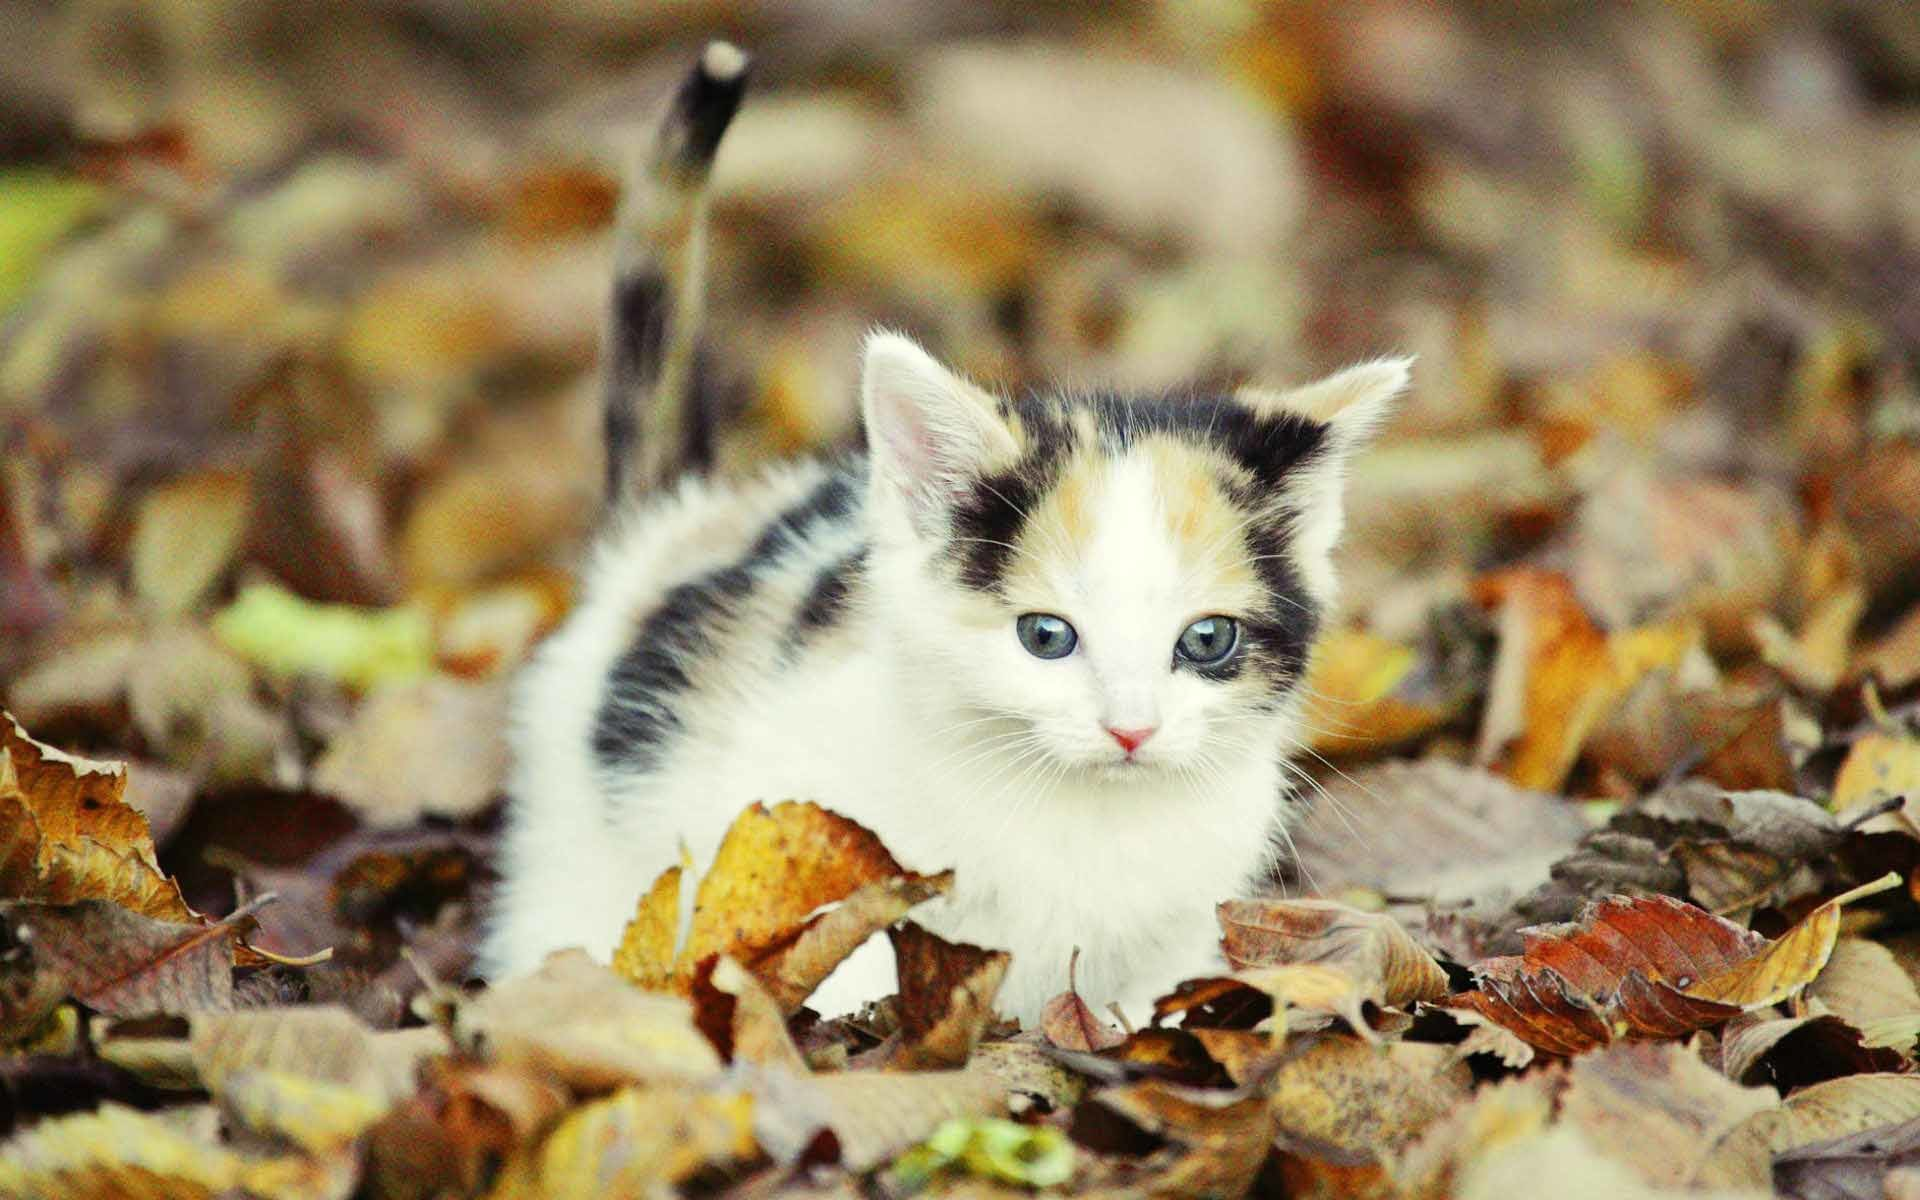 Wallpapers For > Cute Fall Desktop Backgrounds